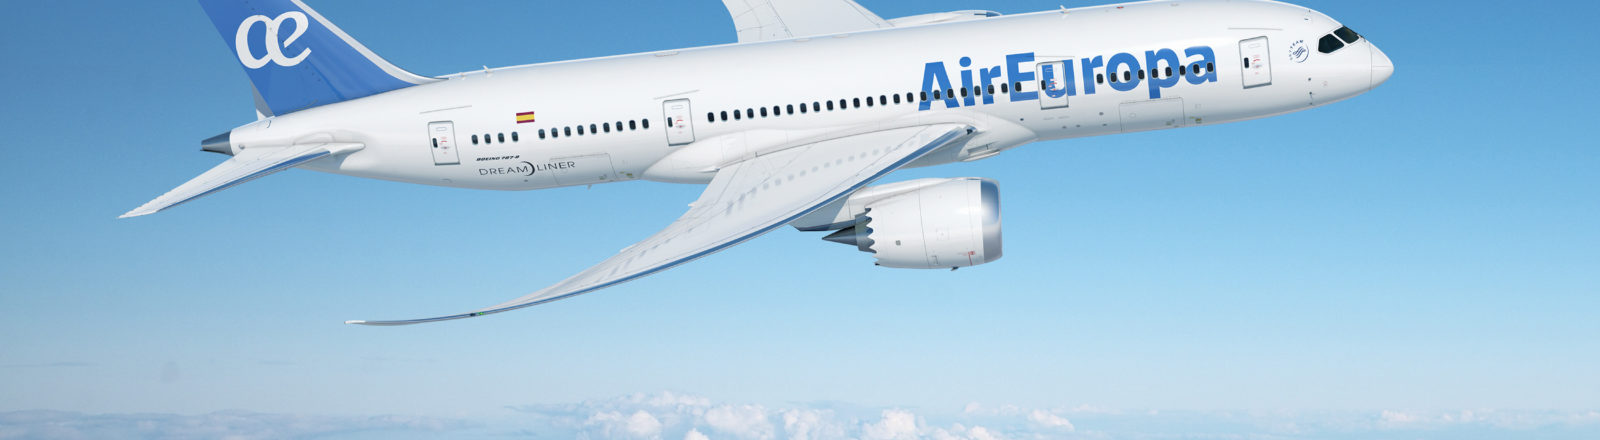 Air Europa: Main Partner BLA 2019